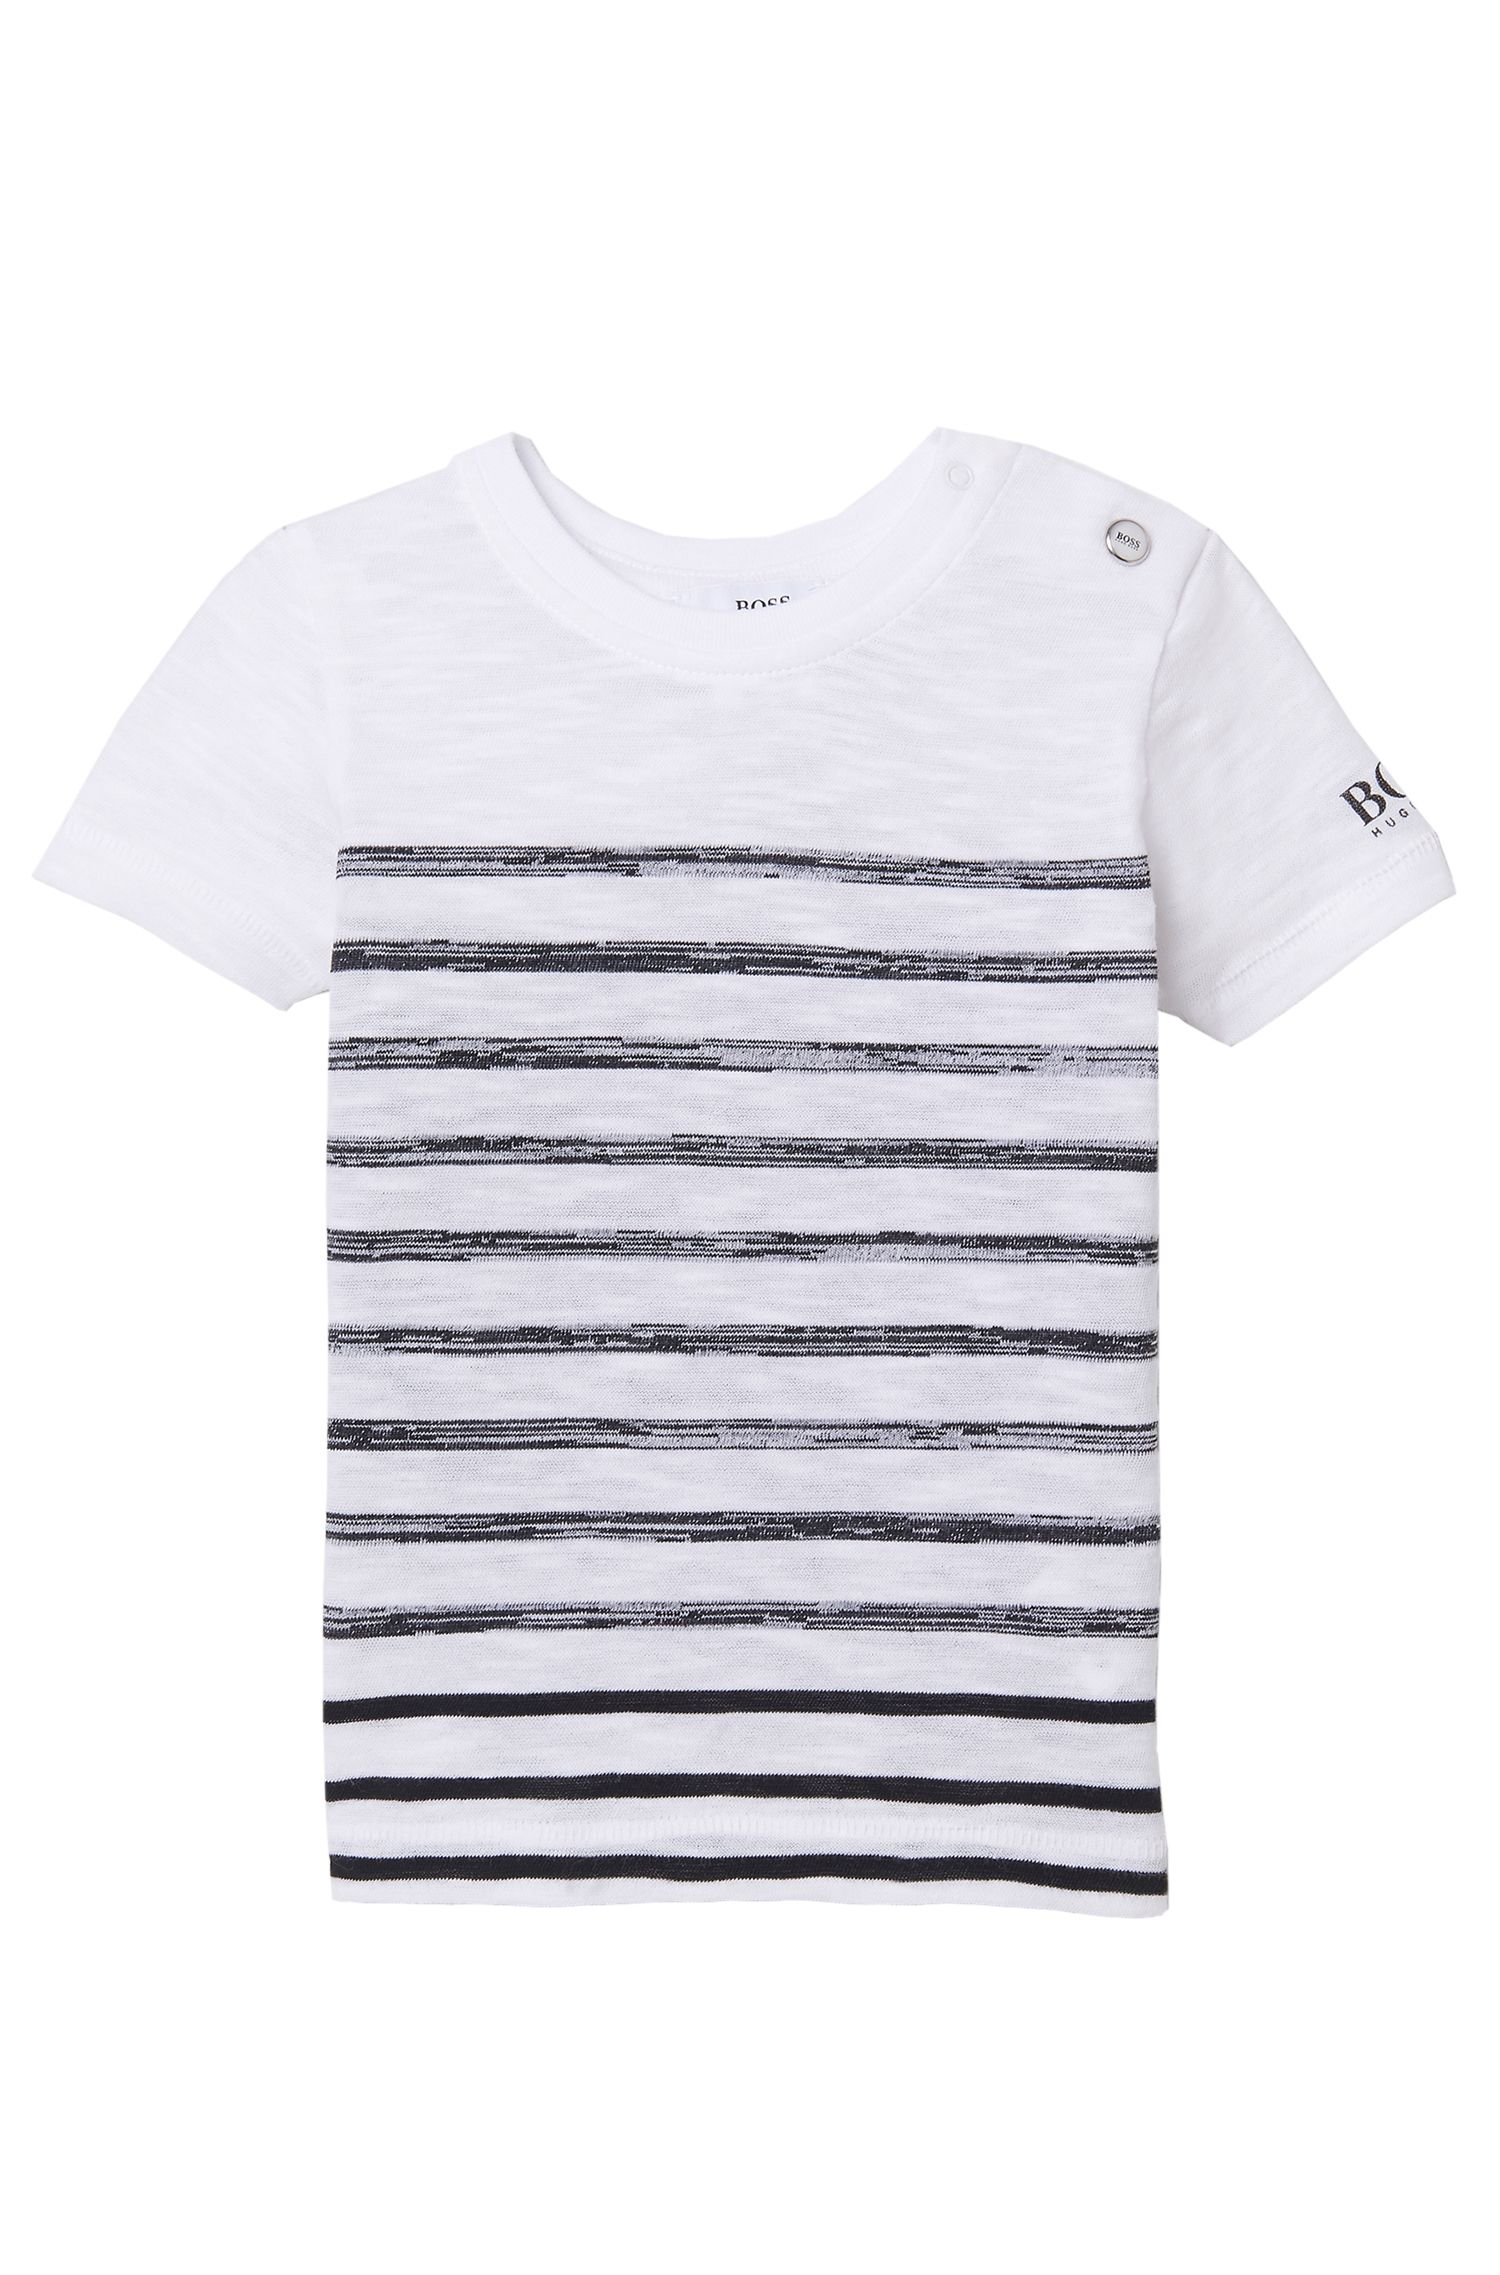 'J05460' | Toddler Cotton Striped Slub T-Shirt